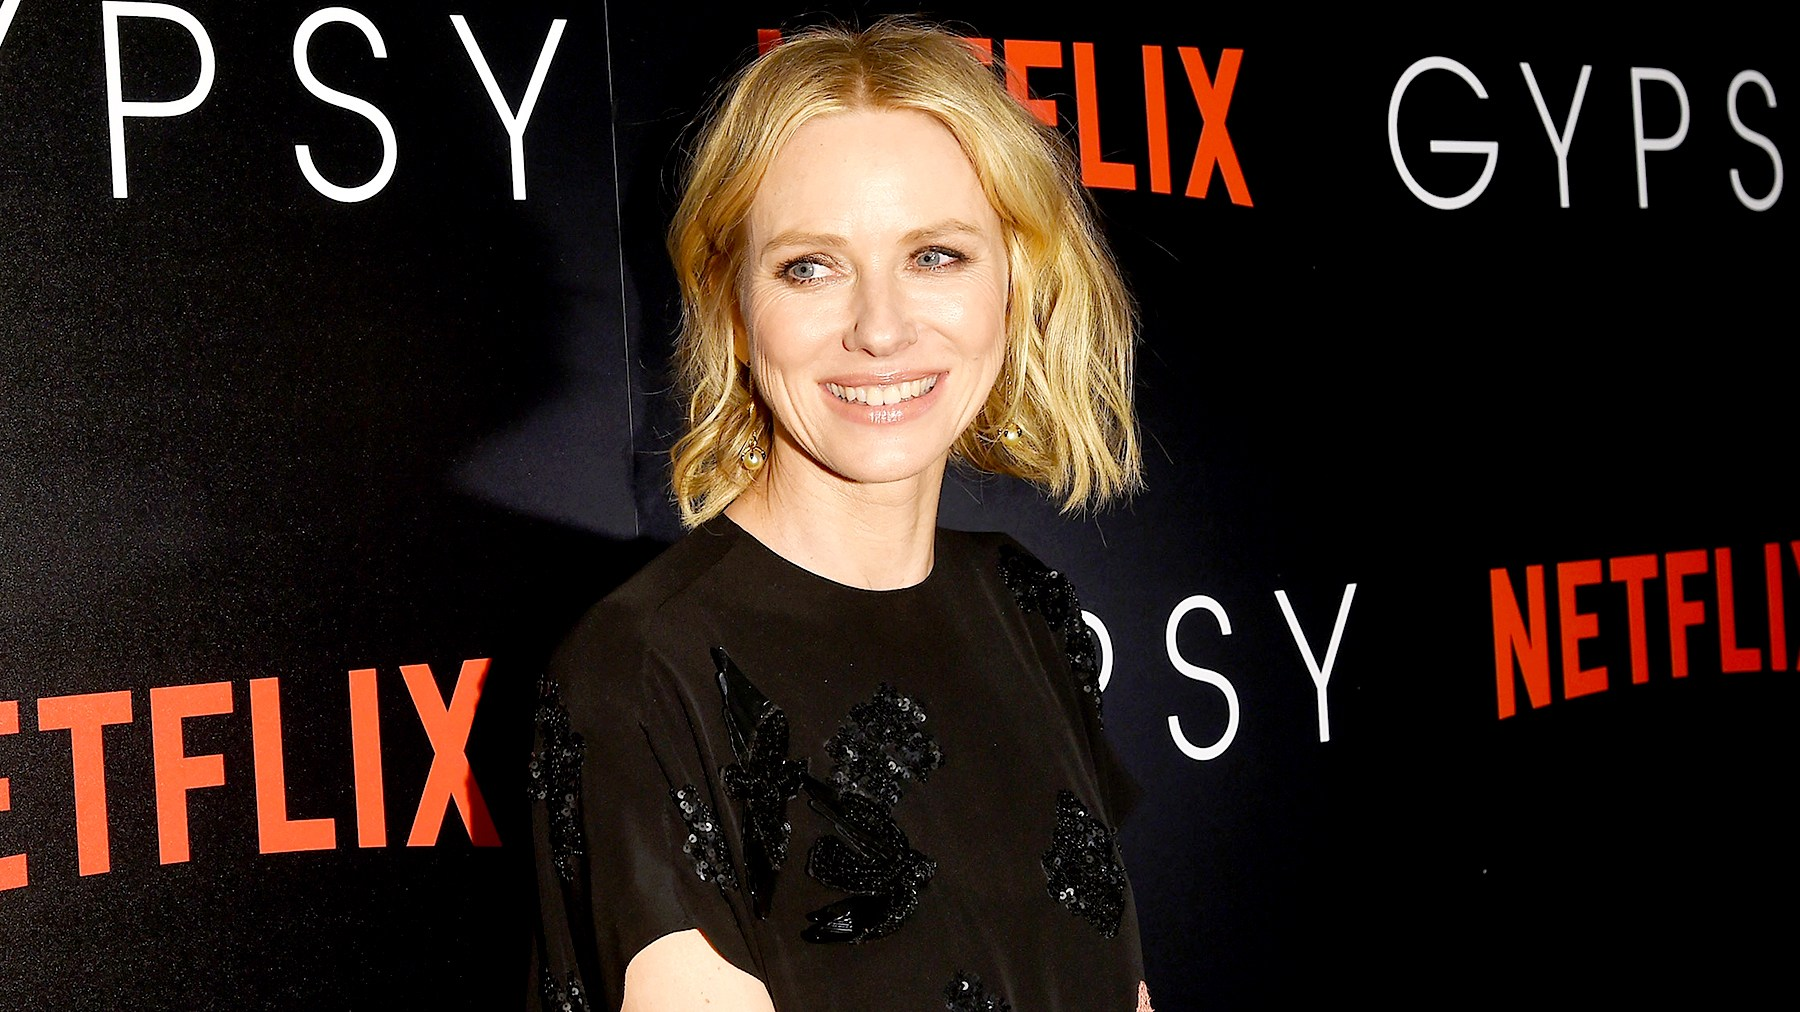 Naomi Watts attends a special screening of 'Gypsy' hosted by Netflix at Public Hotel on June 29, 2017 in New York City.